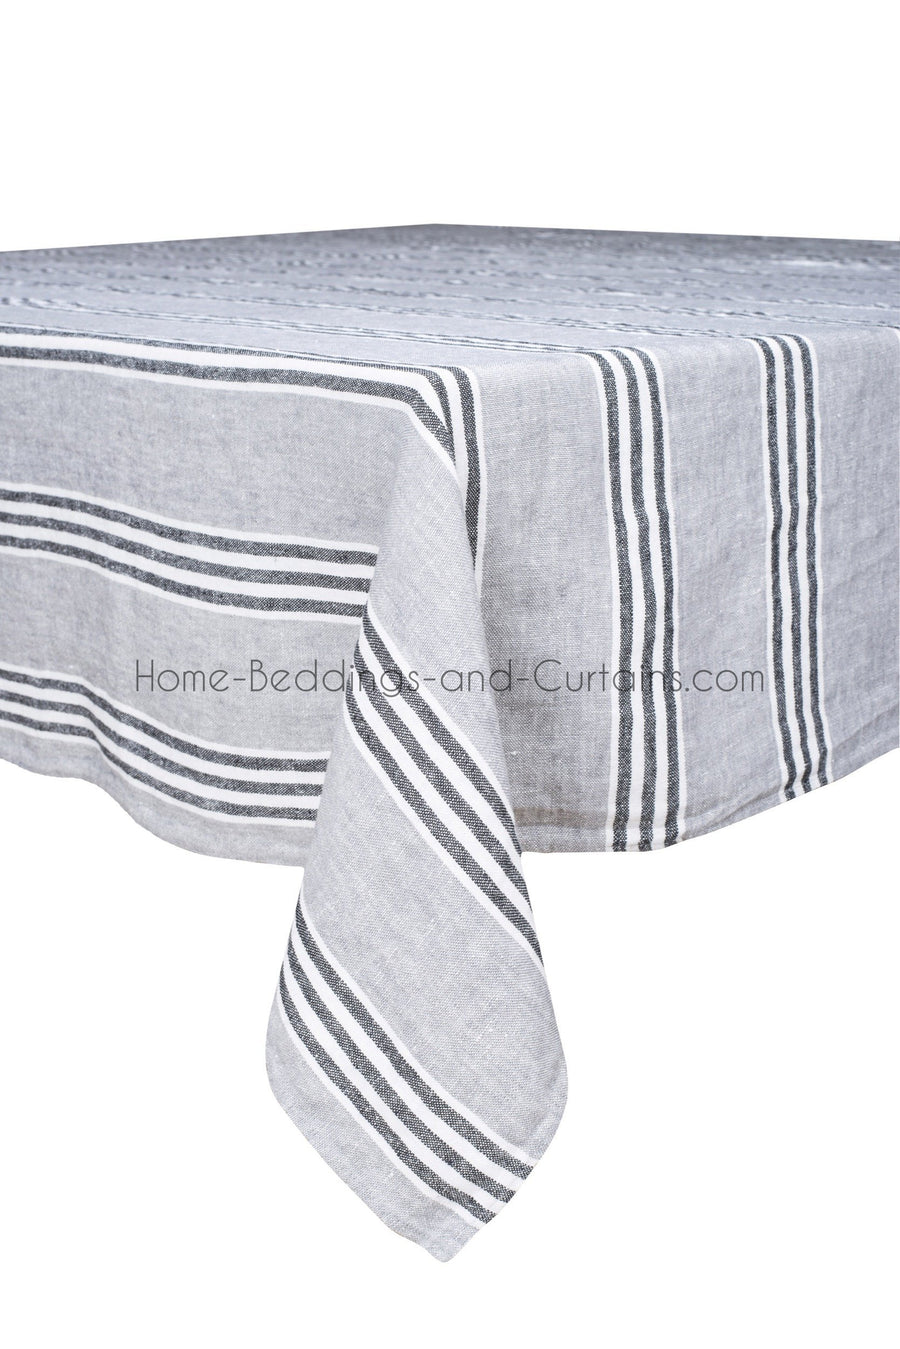 5 coloris disponibles - Harmony - Serviette de table en lin lavé Corte - Home Beddings and Curtains